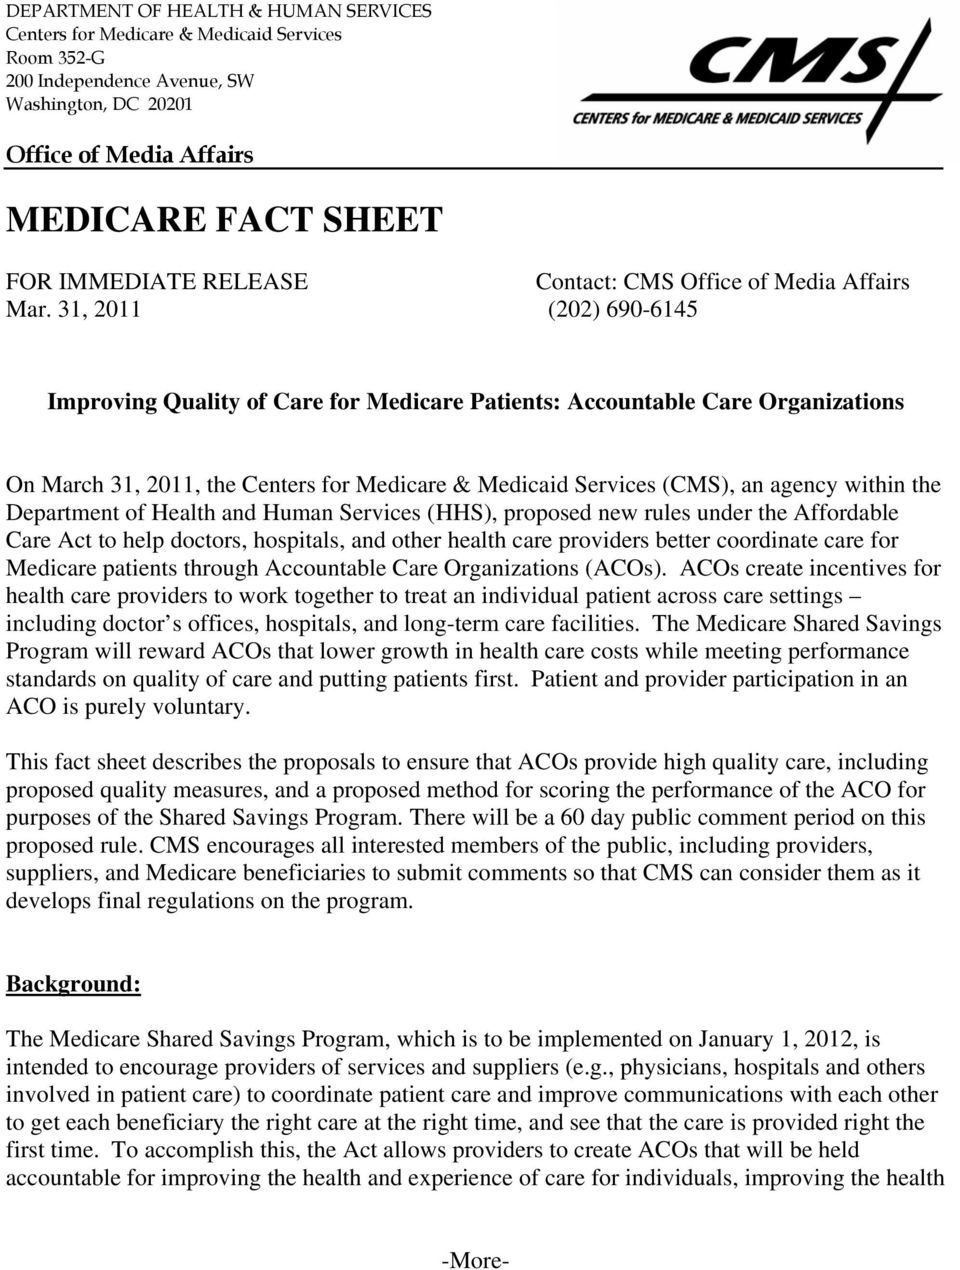 31, 2011 (202) 690-6145 Improving Quality of Care for Medicare Patients: Accountable Care Organizations On March 31, 2011, the Centers for Medicare & Medicaid Services (CMS), an agency within the